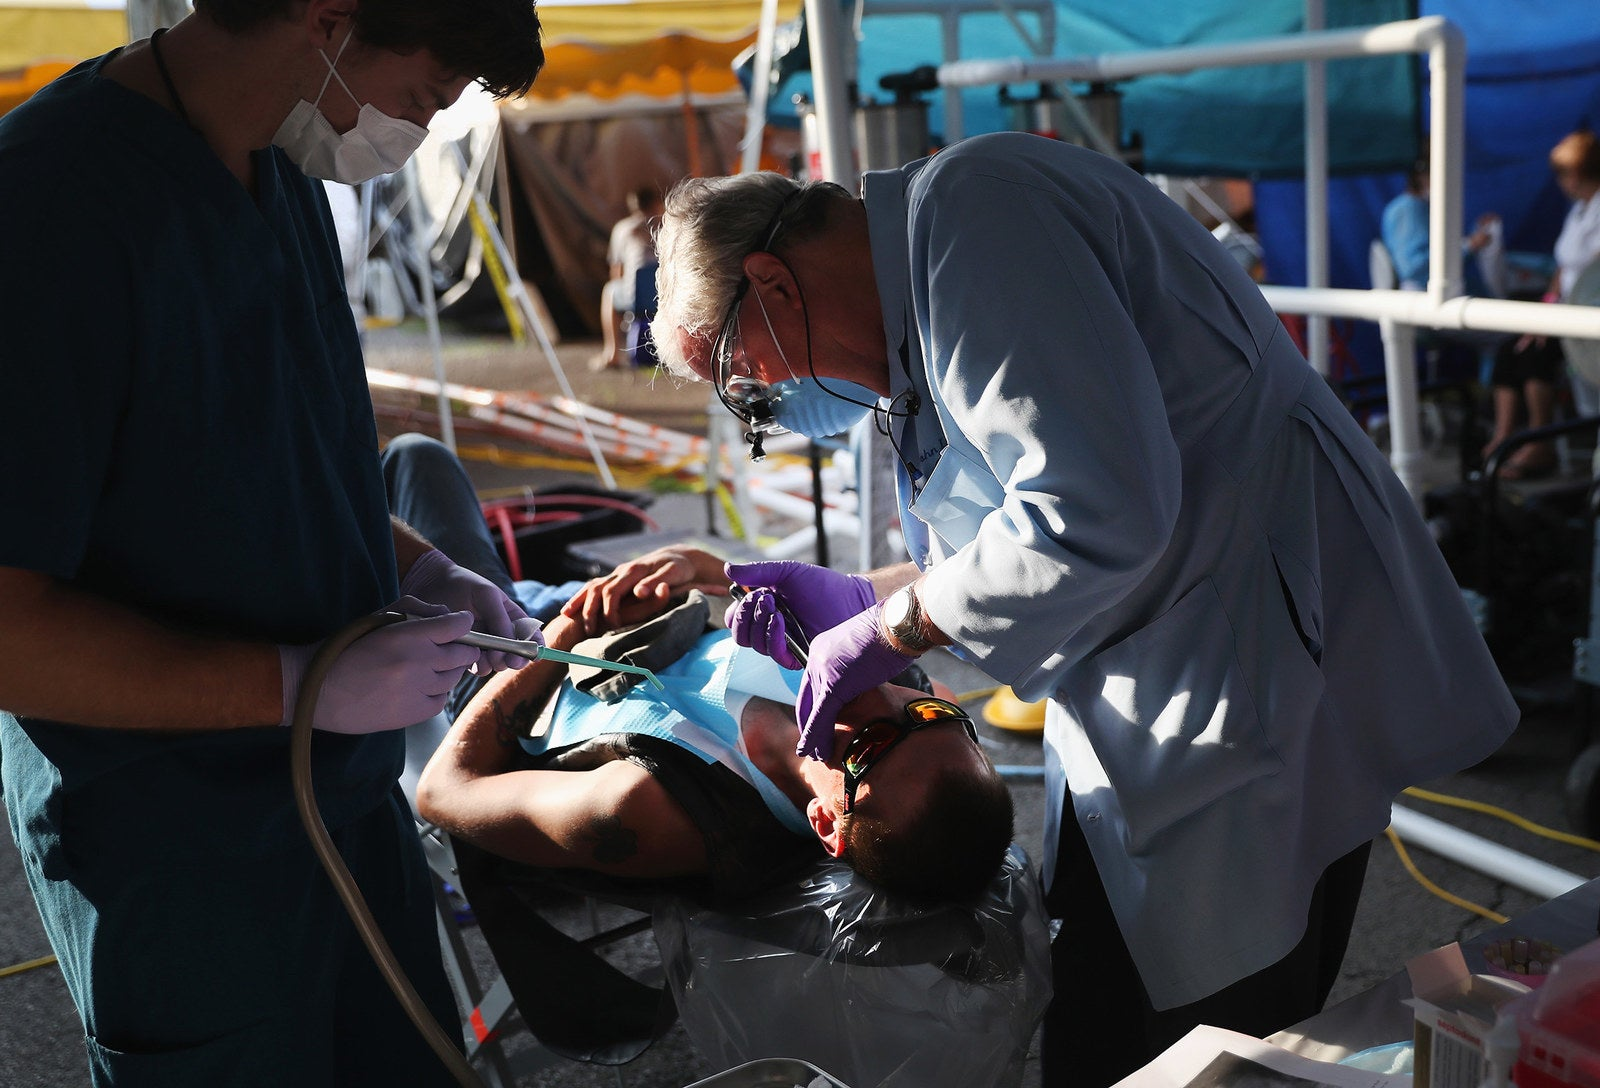 A patient receives medical care from onsite dentists in Wise on July 21.